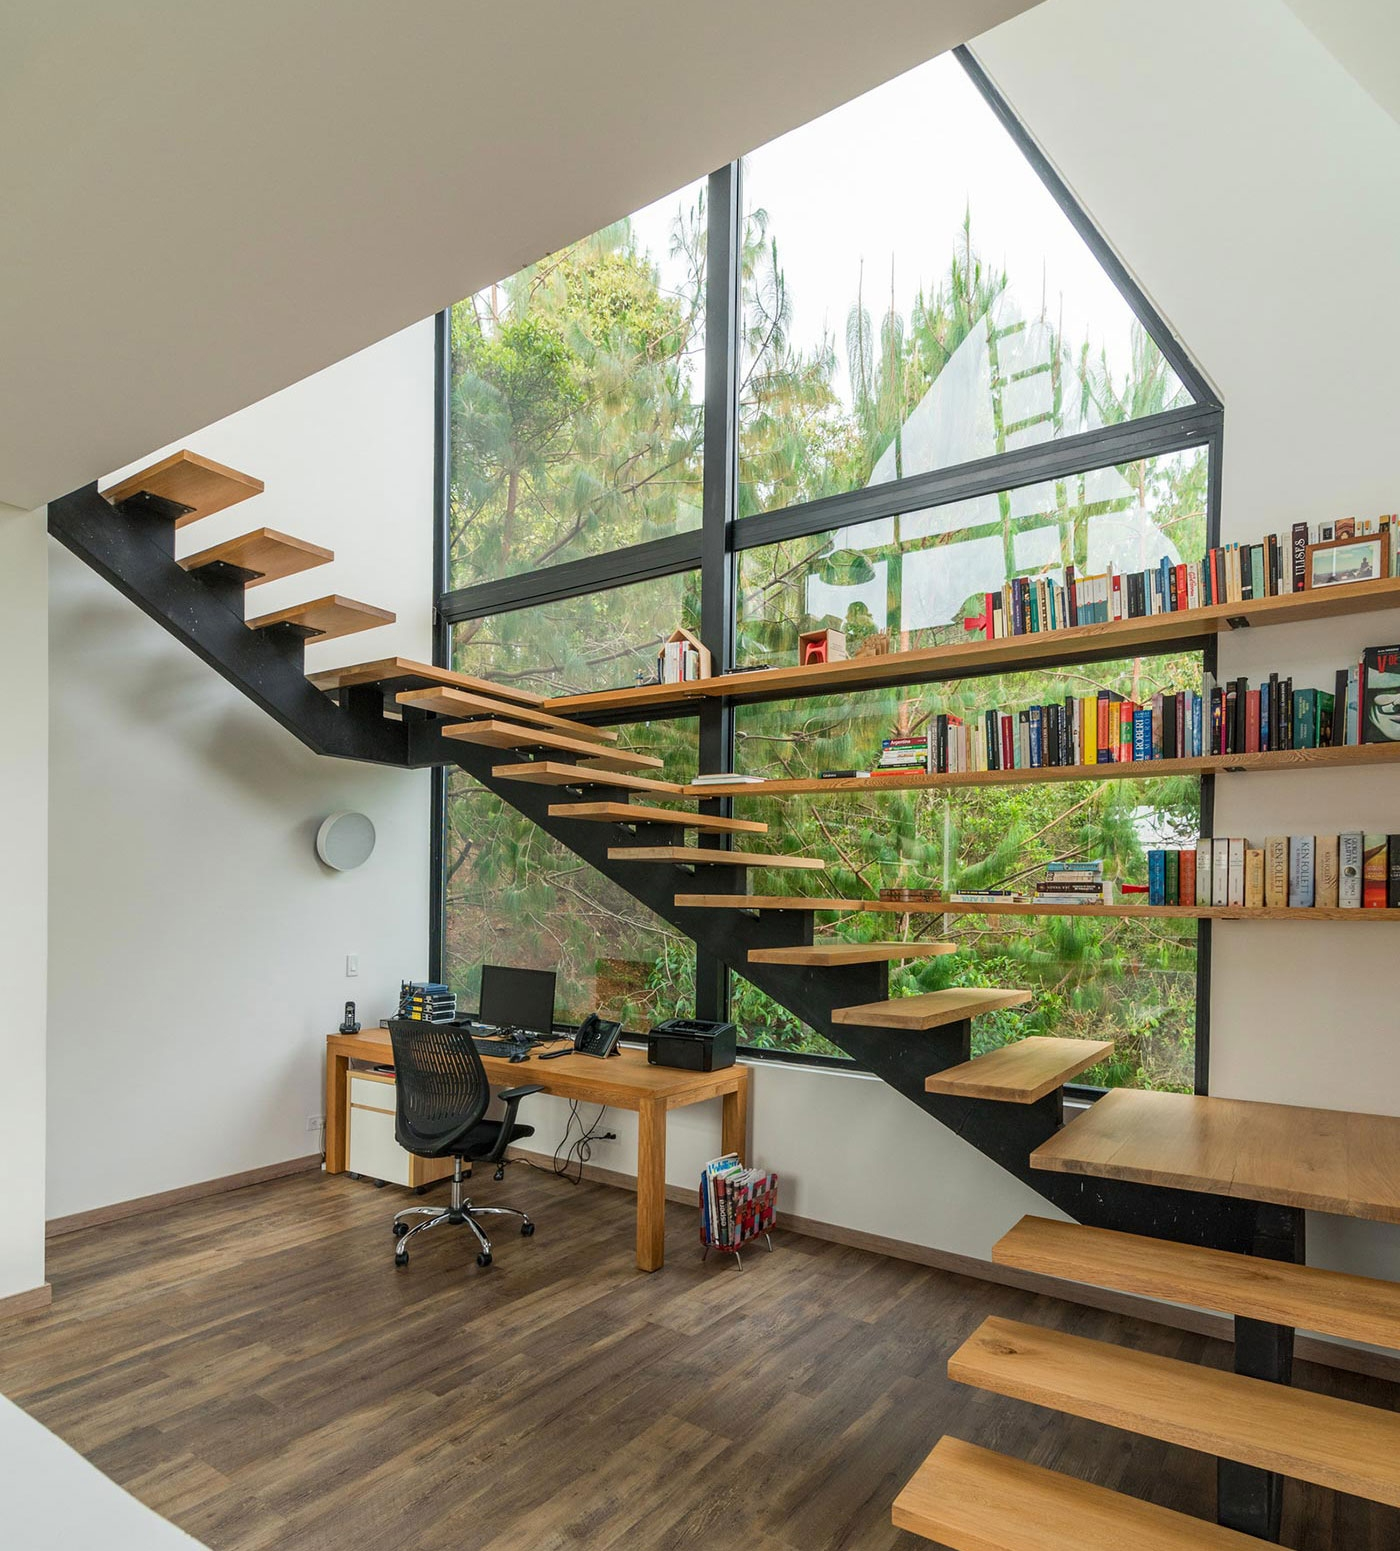 Best Staircase Designs For The Modern Home – Adorable Home   Design For Stairs At Home   Iron   Interior Design   Stairway   Wood   Living Room